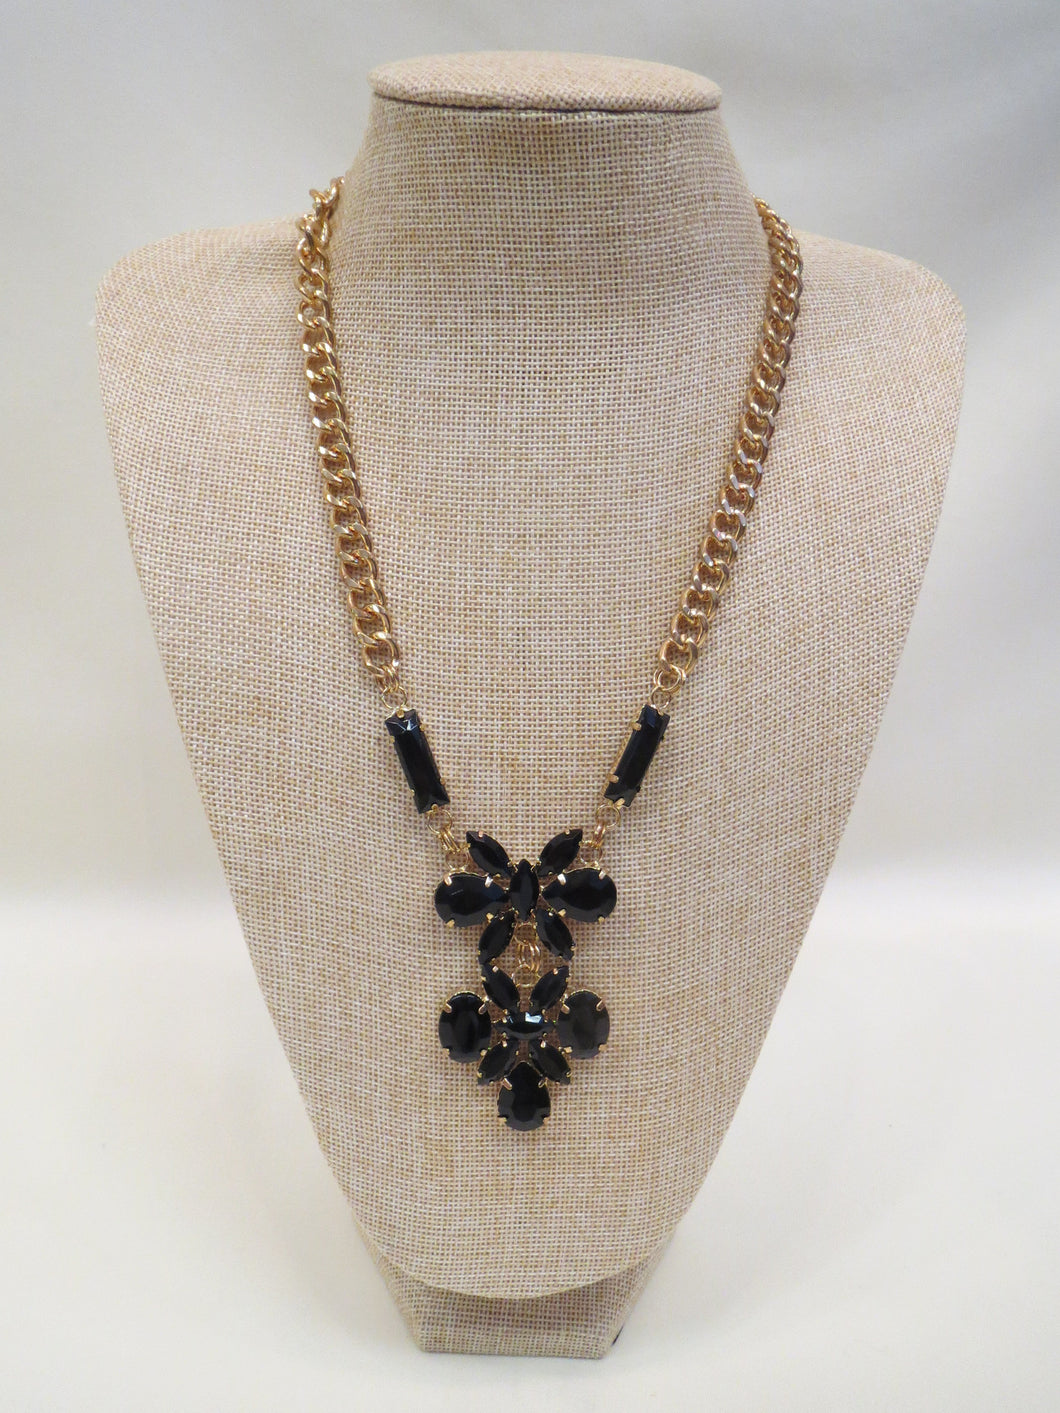 ADO Gold Chain Necklace with Black Stone Design   All Dec\'d Out ...